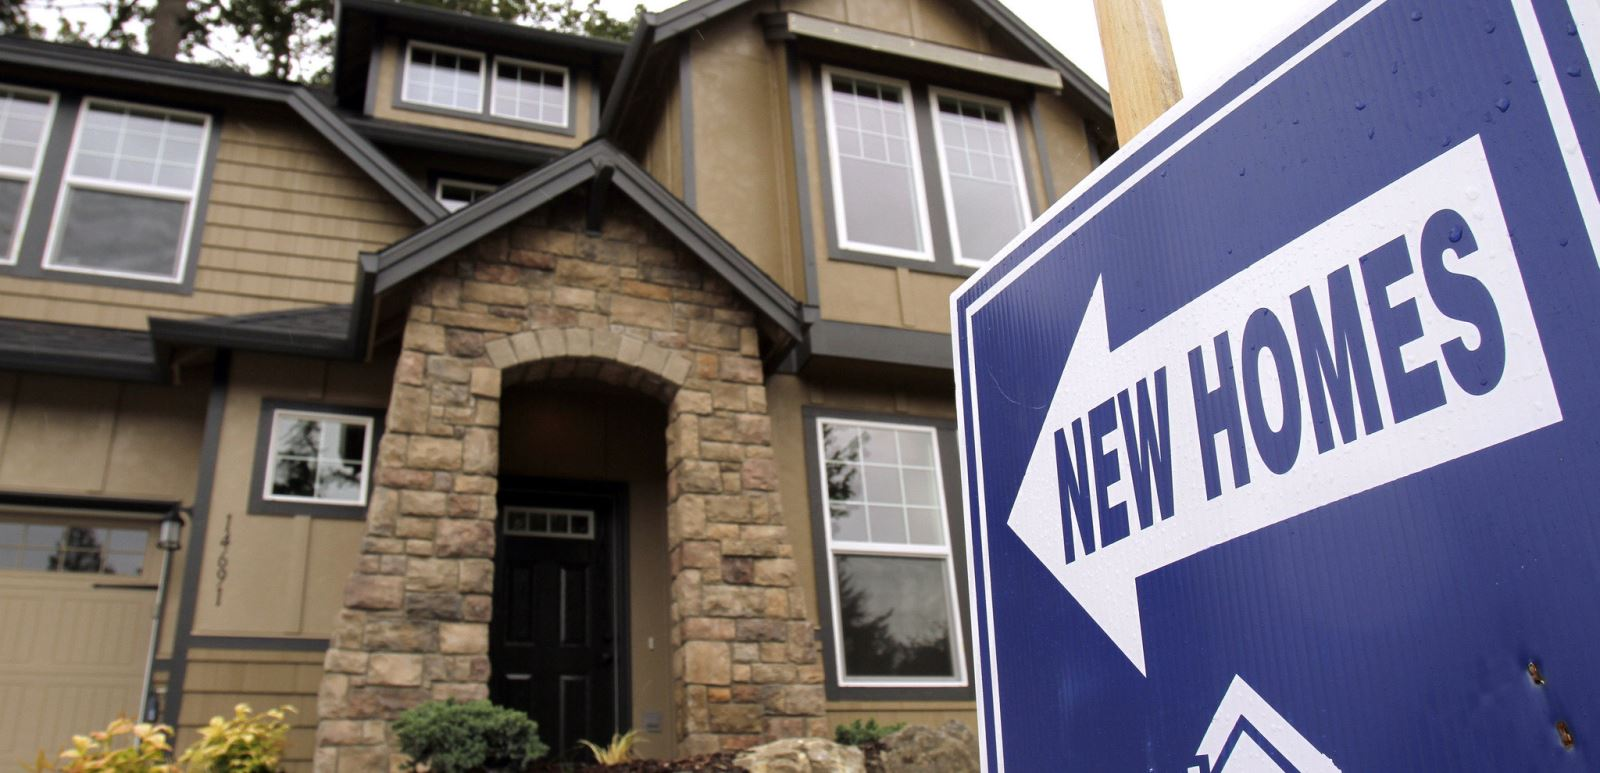 Home sales rebounded 20% in May says RE/MAX